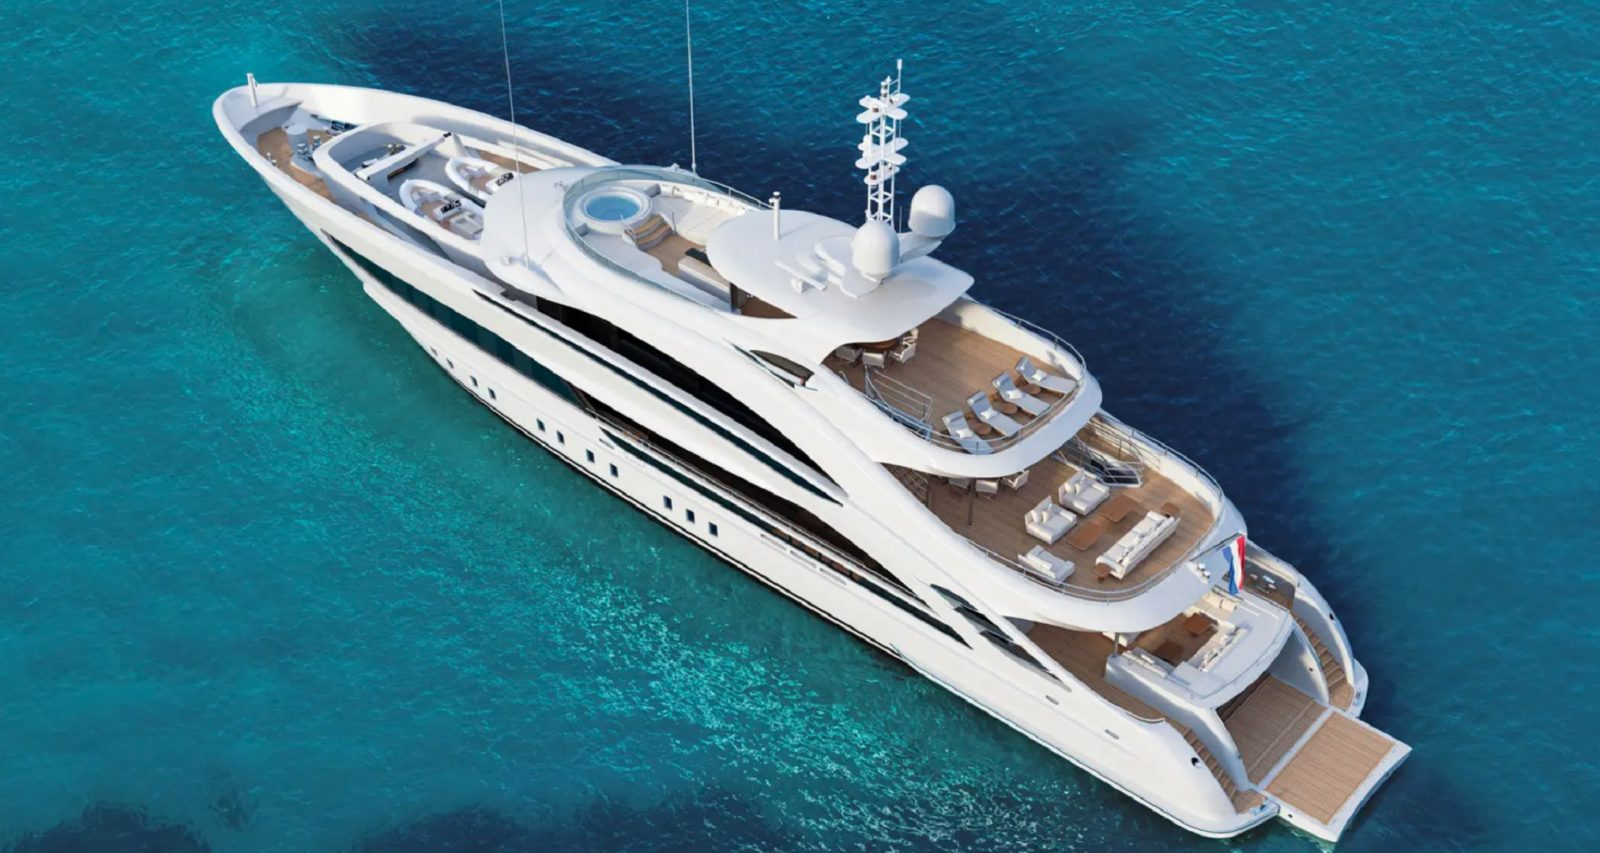 one-lucky-american-will-get-to-enjoy-bluewater-sailing-aboard-this-luxurious-floating-home